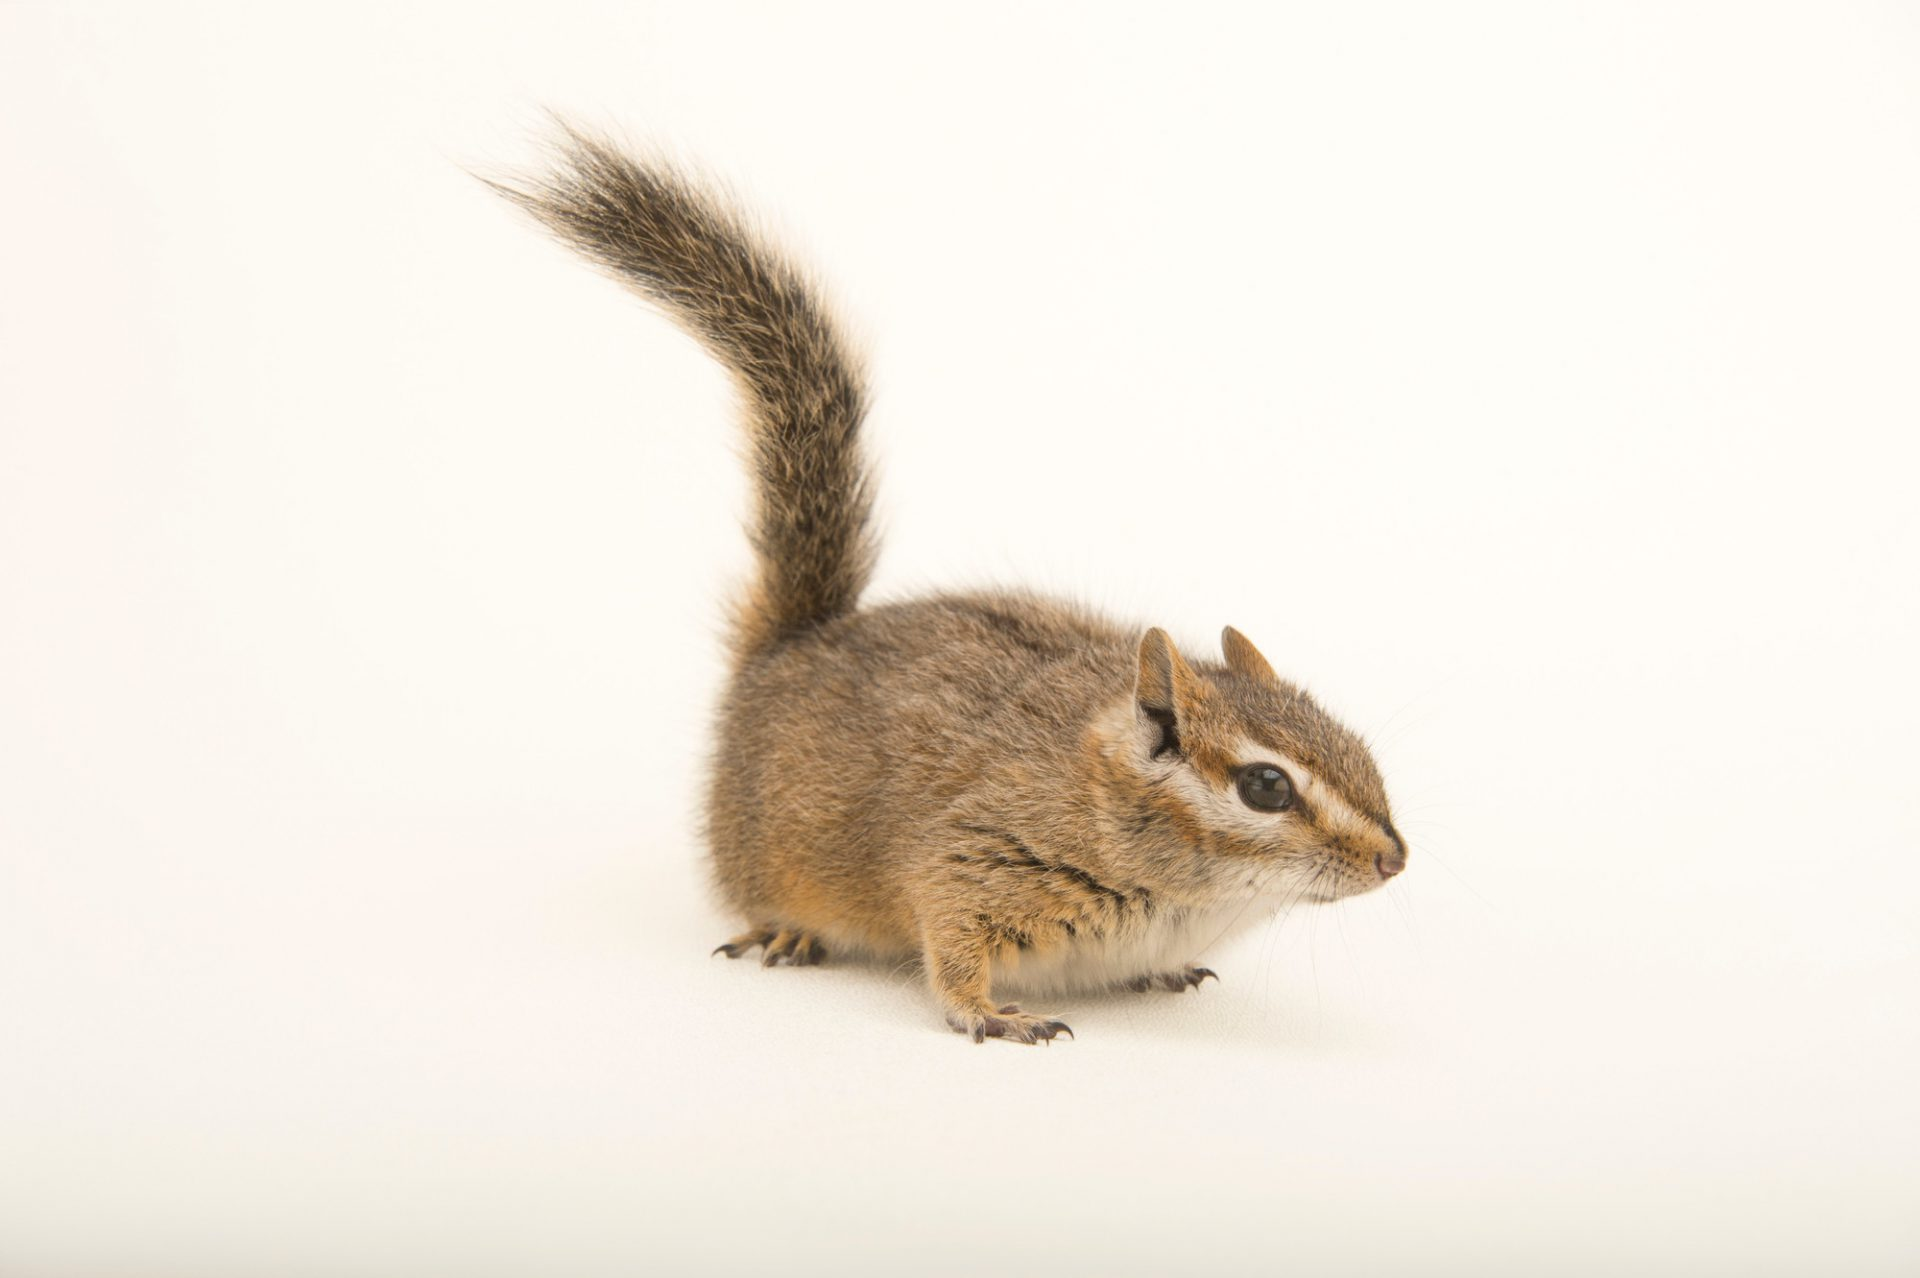 Picture of a Hopi chipmunk (Neotamias rufus) at the Wildlife Rehabilitation Center of Northern Utah.